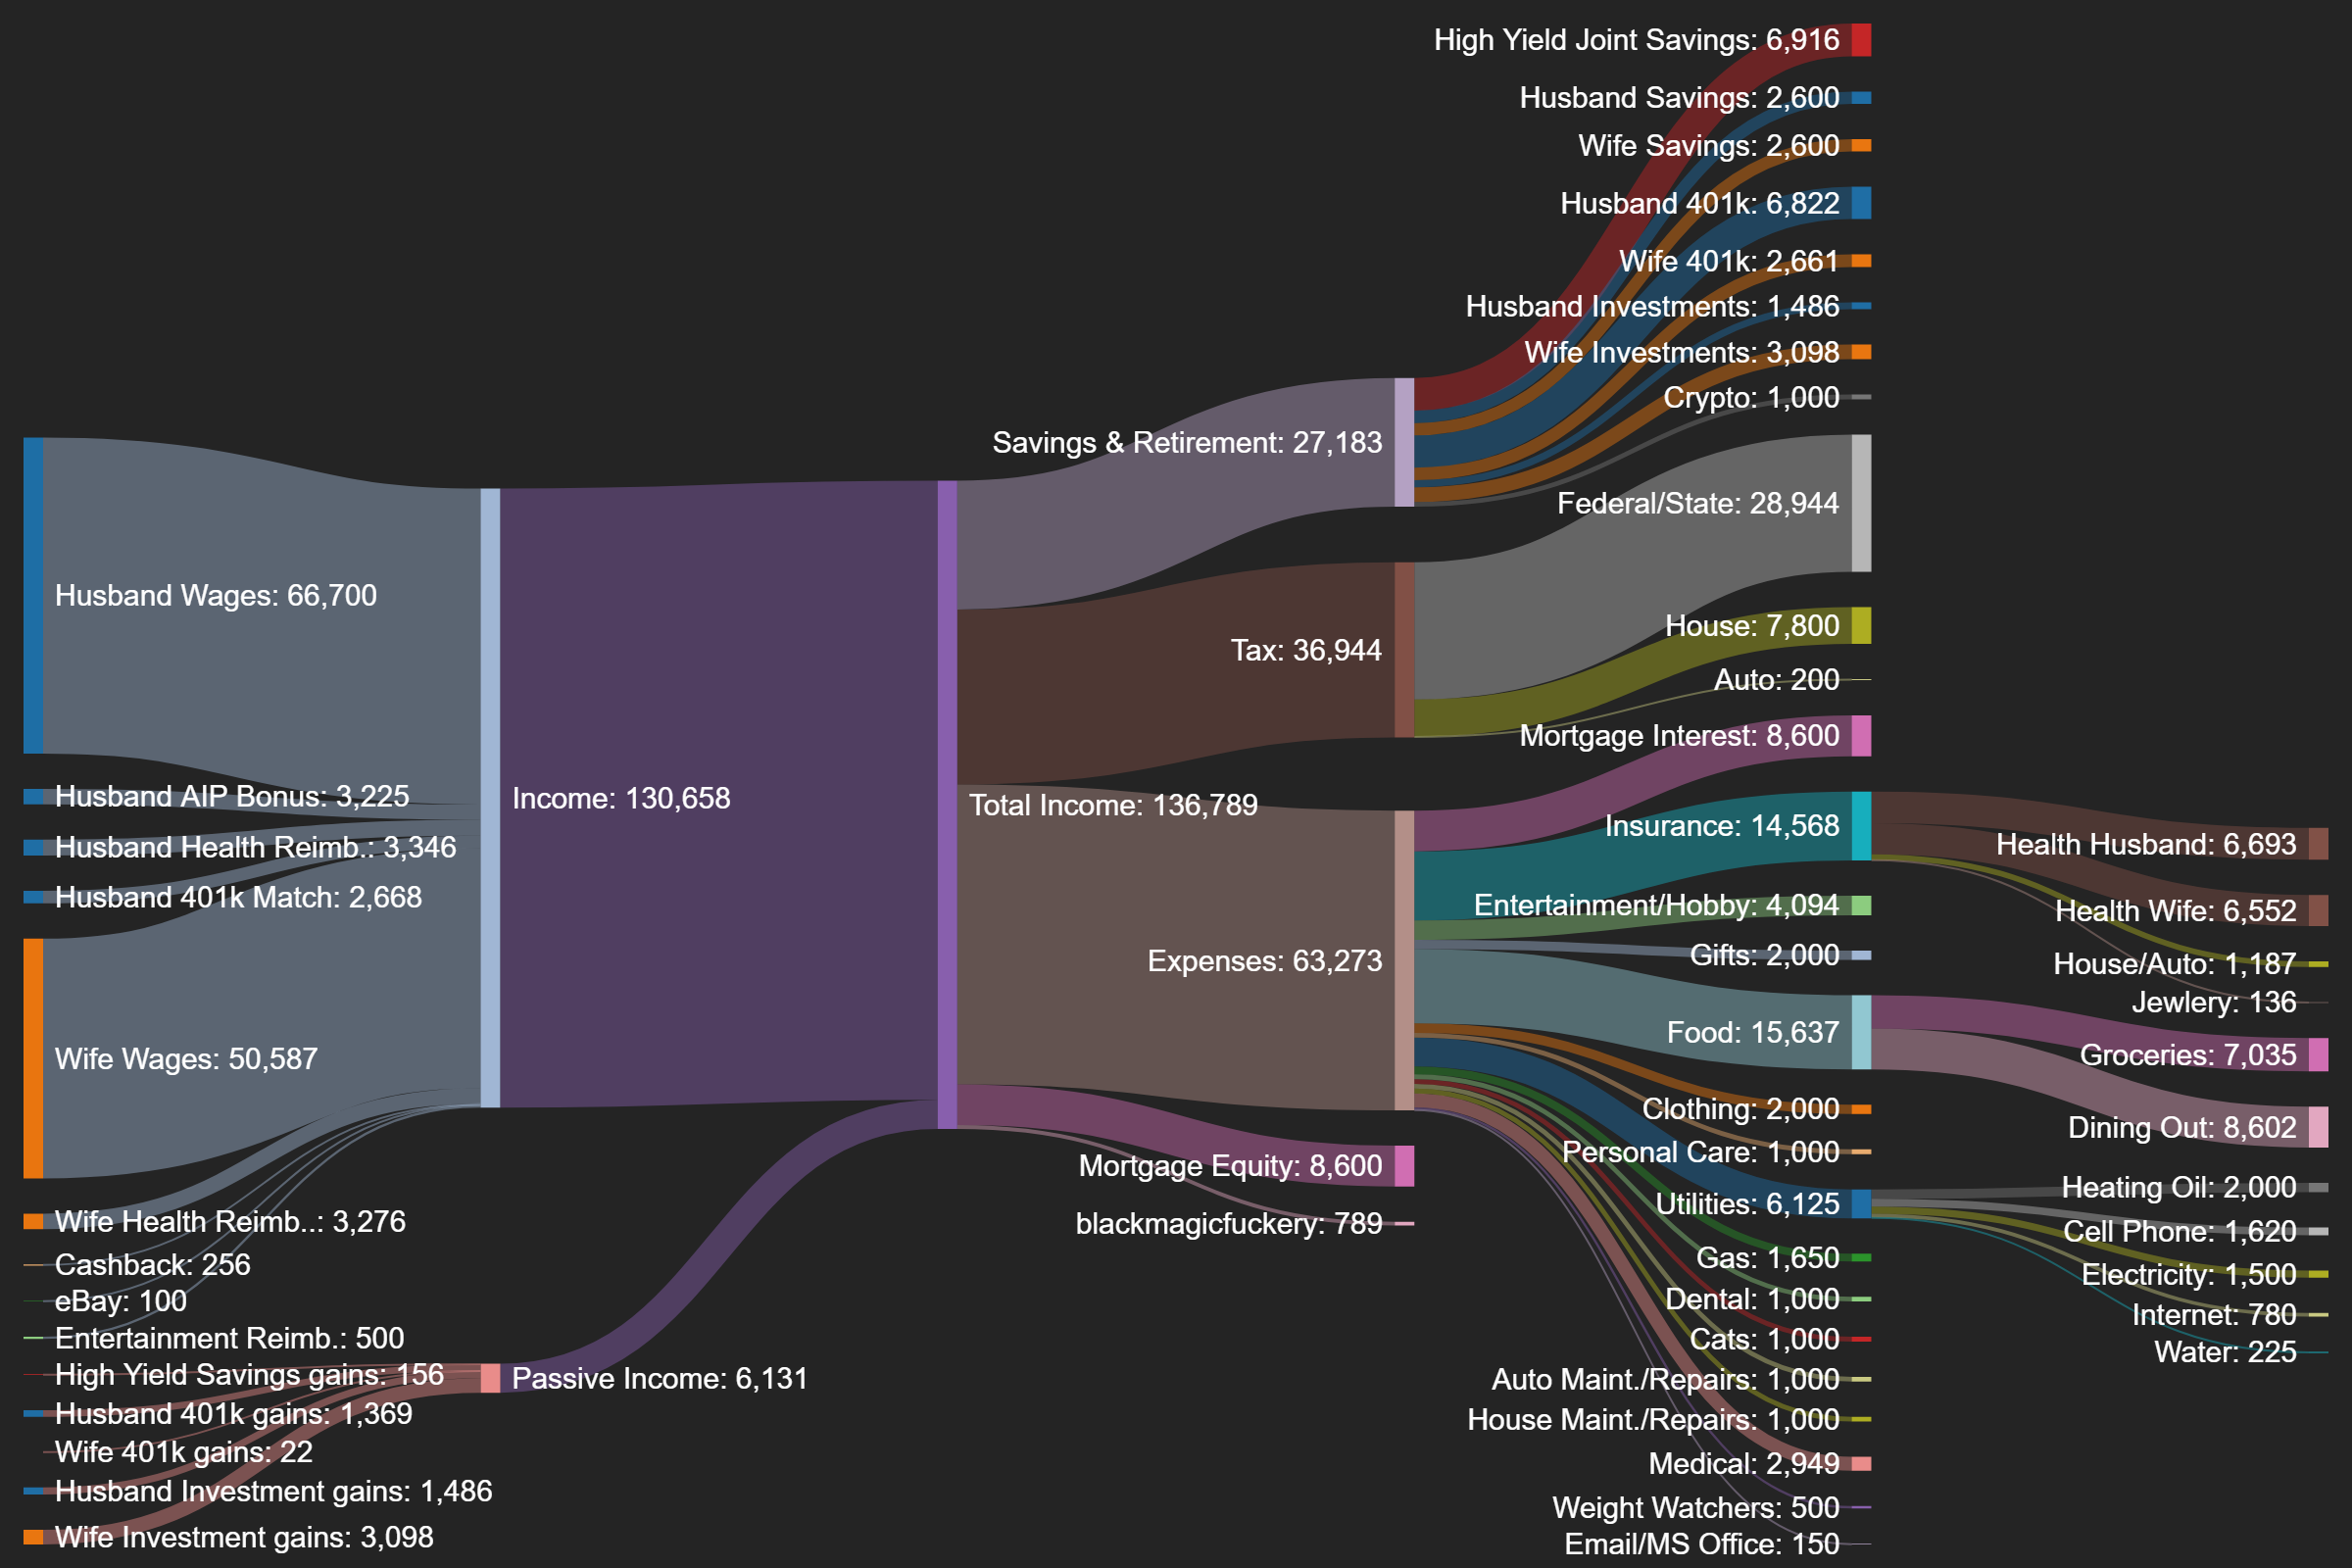 r/dataisbeautiful - Annual finances of a married couple entering their 30's - Sankey diagram [OC]